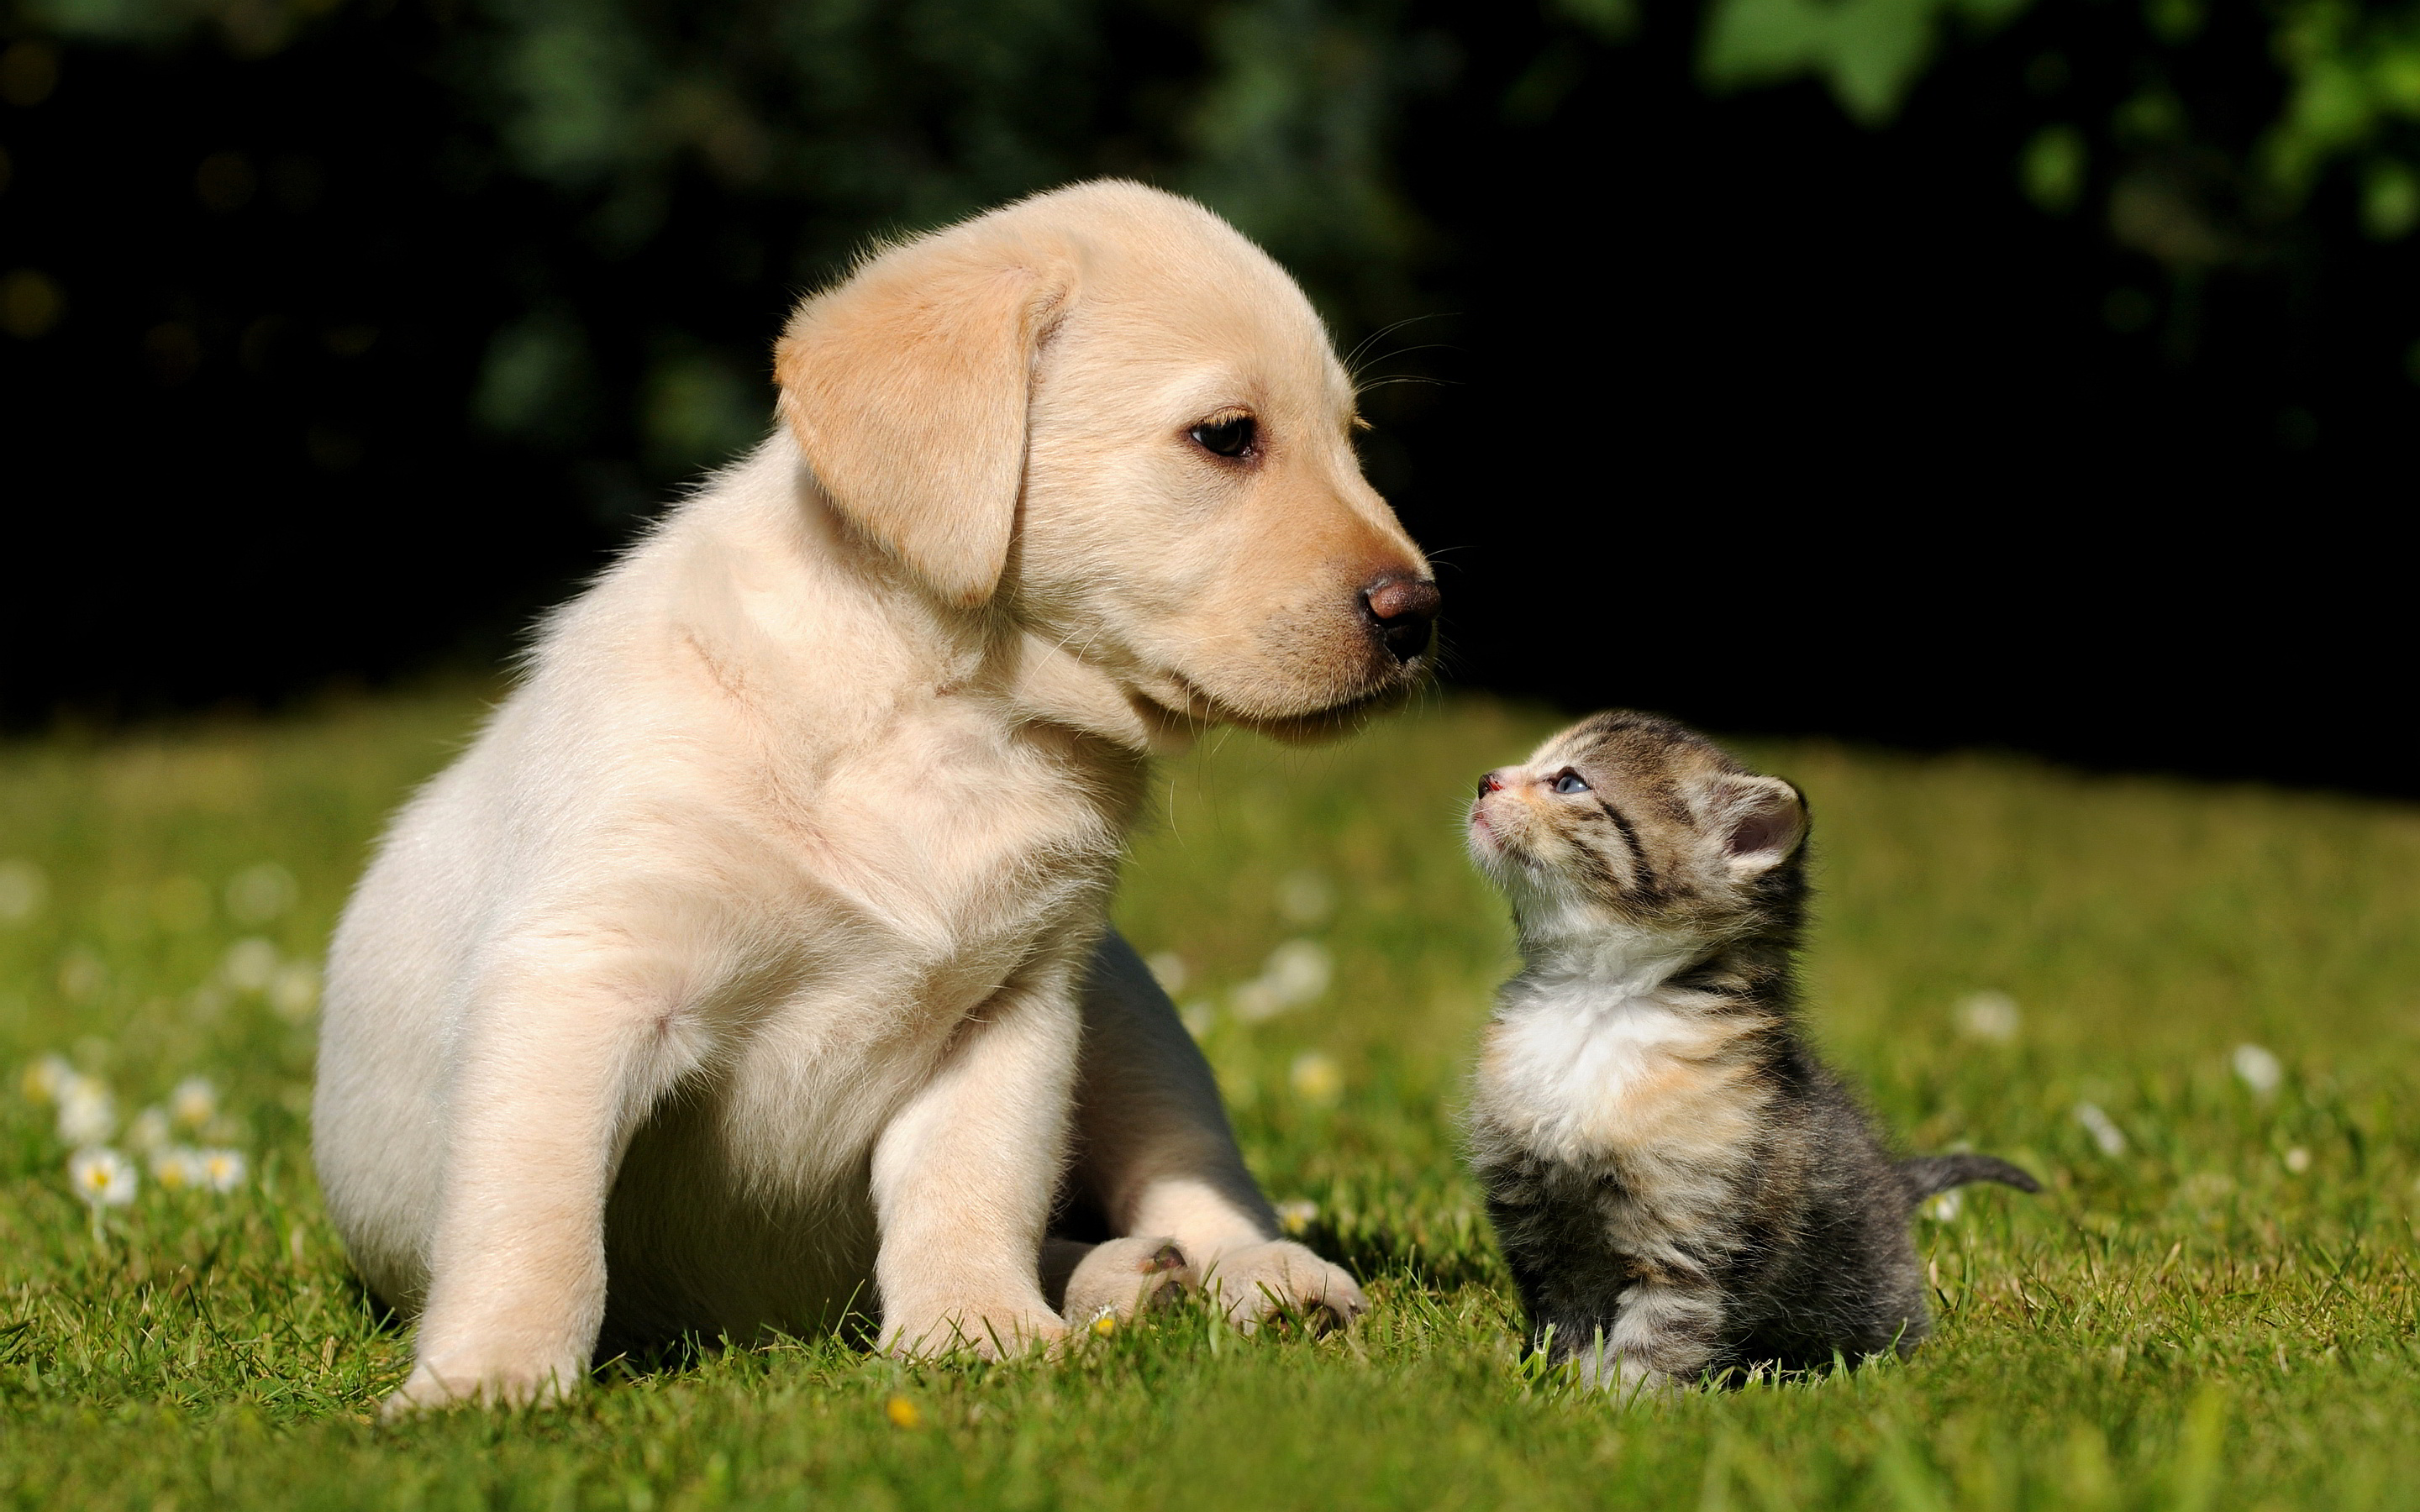 2880x1800 - Cute Puppy and Kitten 21